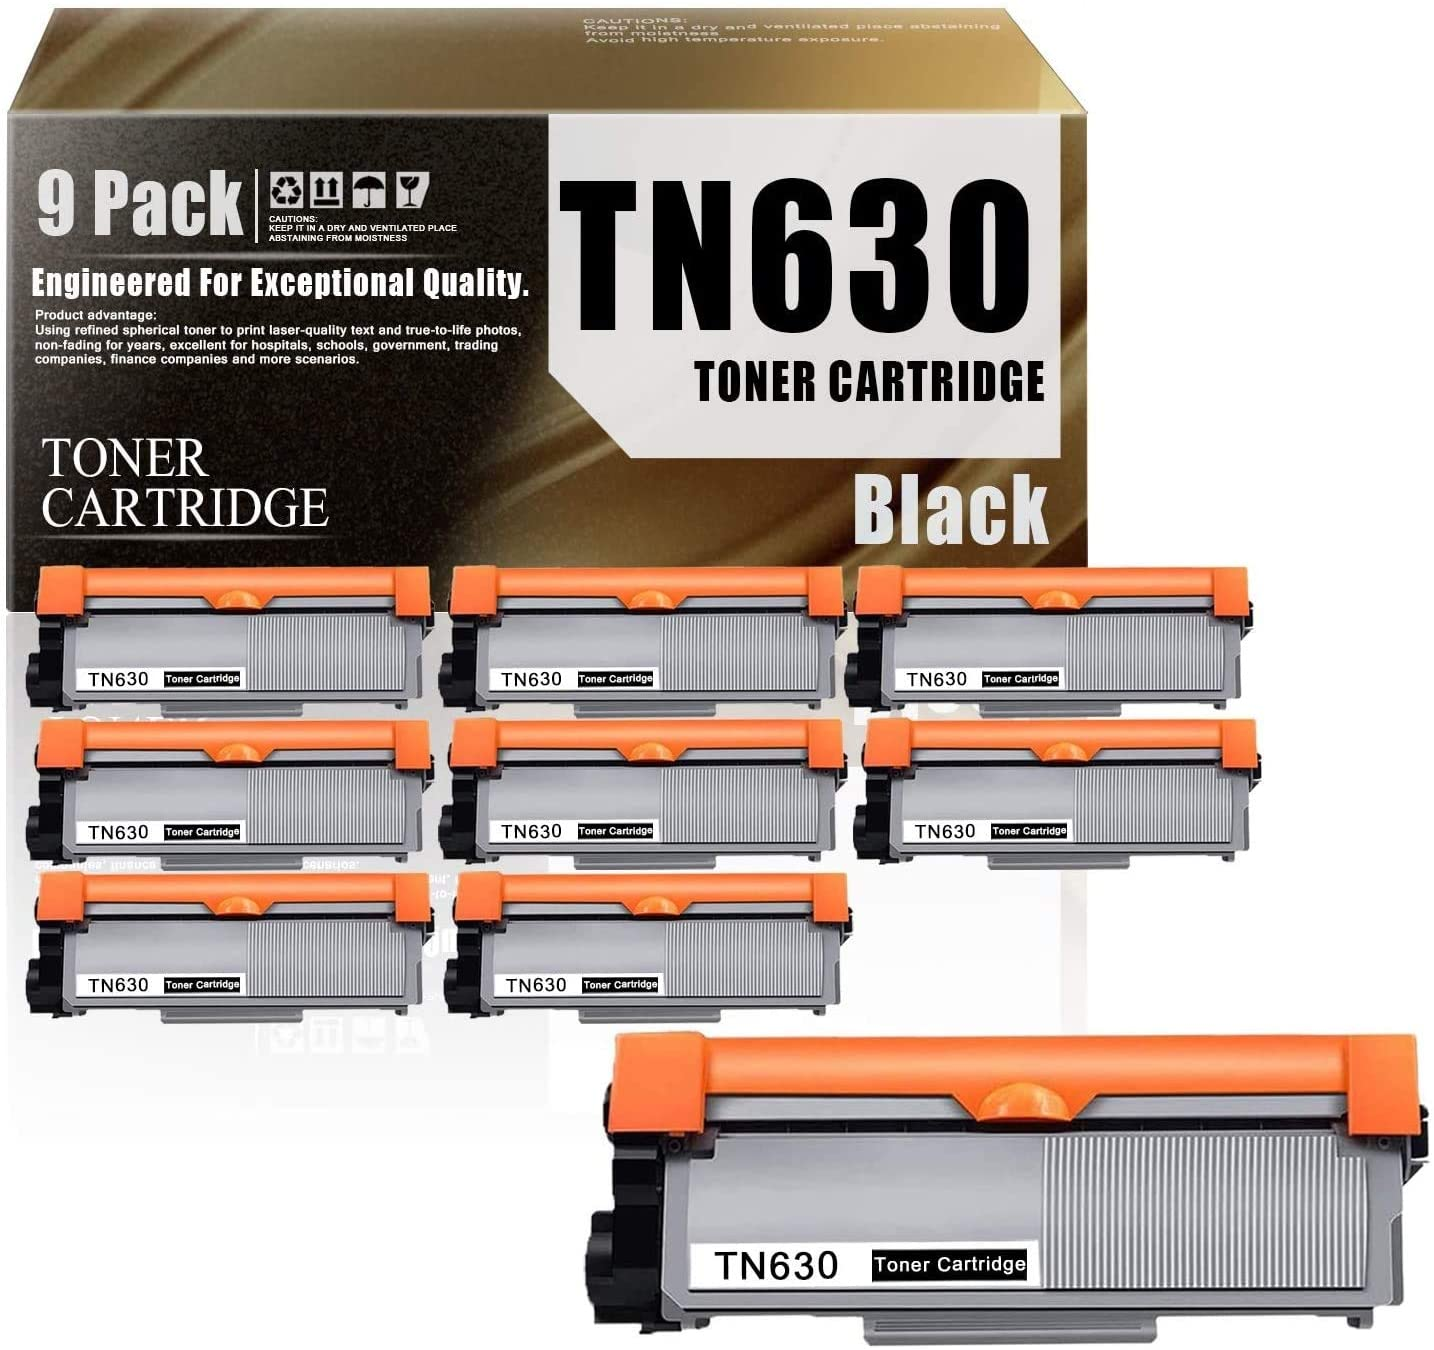 TN660(5-Pack Black) Compatible Toner Cartridge Replacement for Brother HL-L2300D HL-L2305W HL-L2315DW HL-L2320D HL-L2340DW HL-L2360DW HL-L2380DW MFC-L2680W MFC-L2685DW Printers